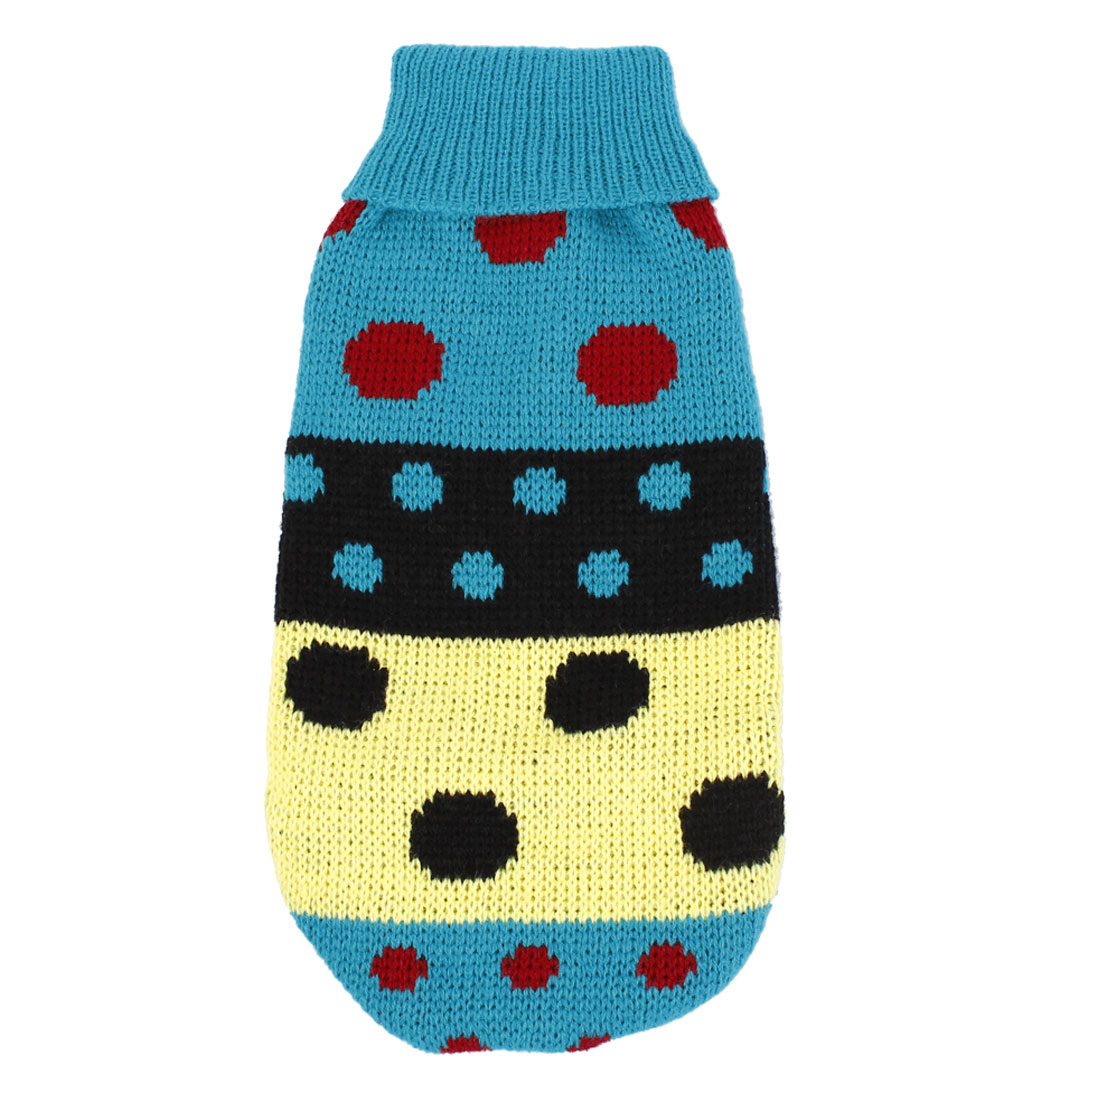 Turtleneck Colored Dot Coat Pet Dog Sweater Apparel Teal Green XS